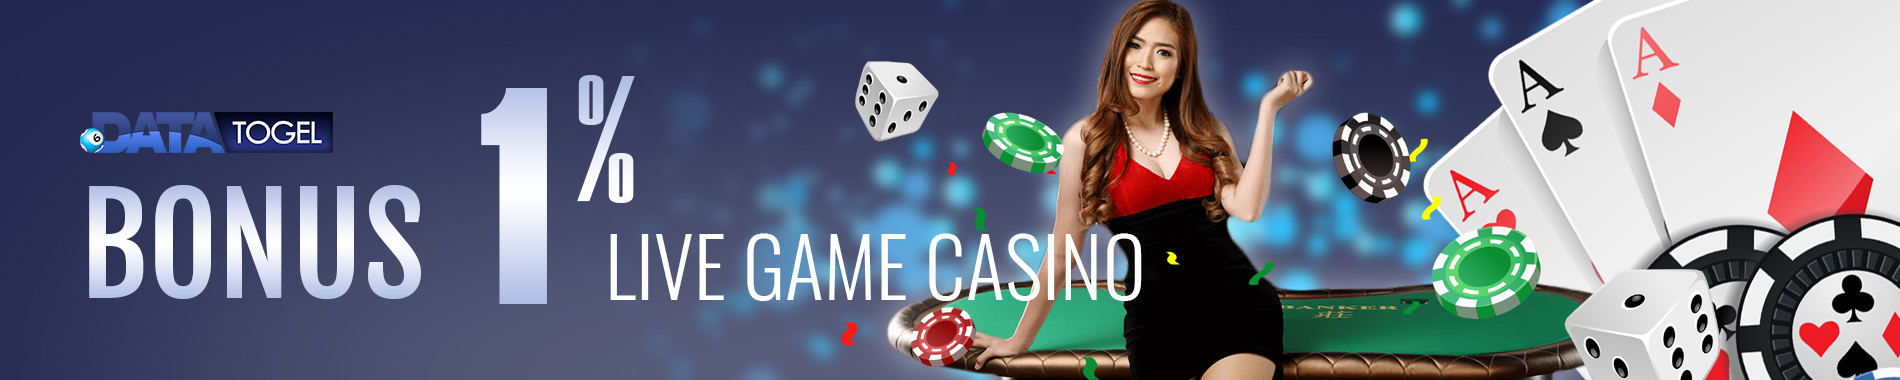 DATATOGEL BONUS MINGGUAN LIVE CASINO